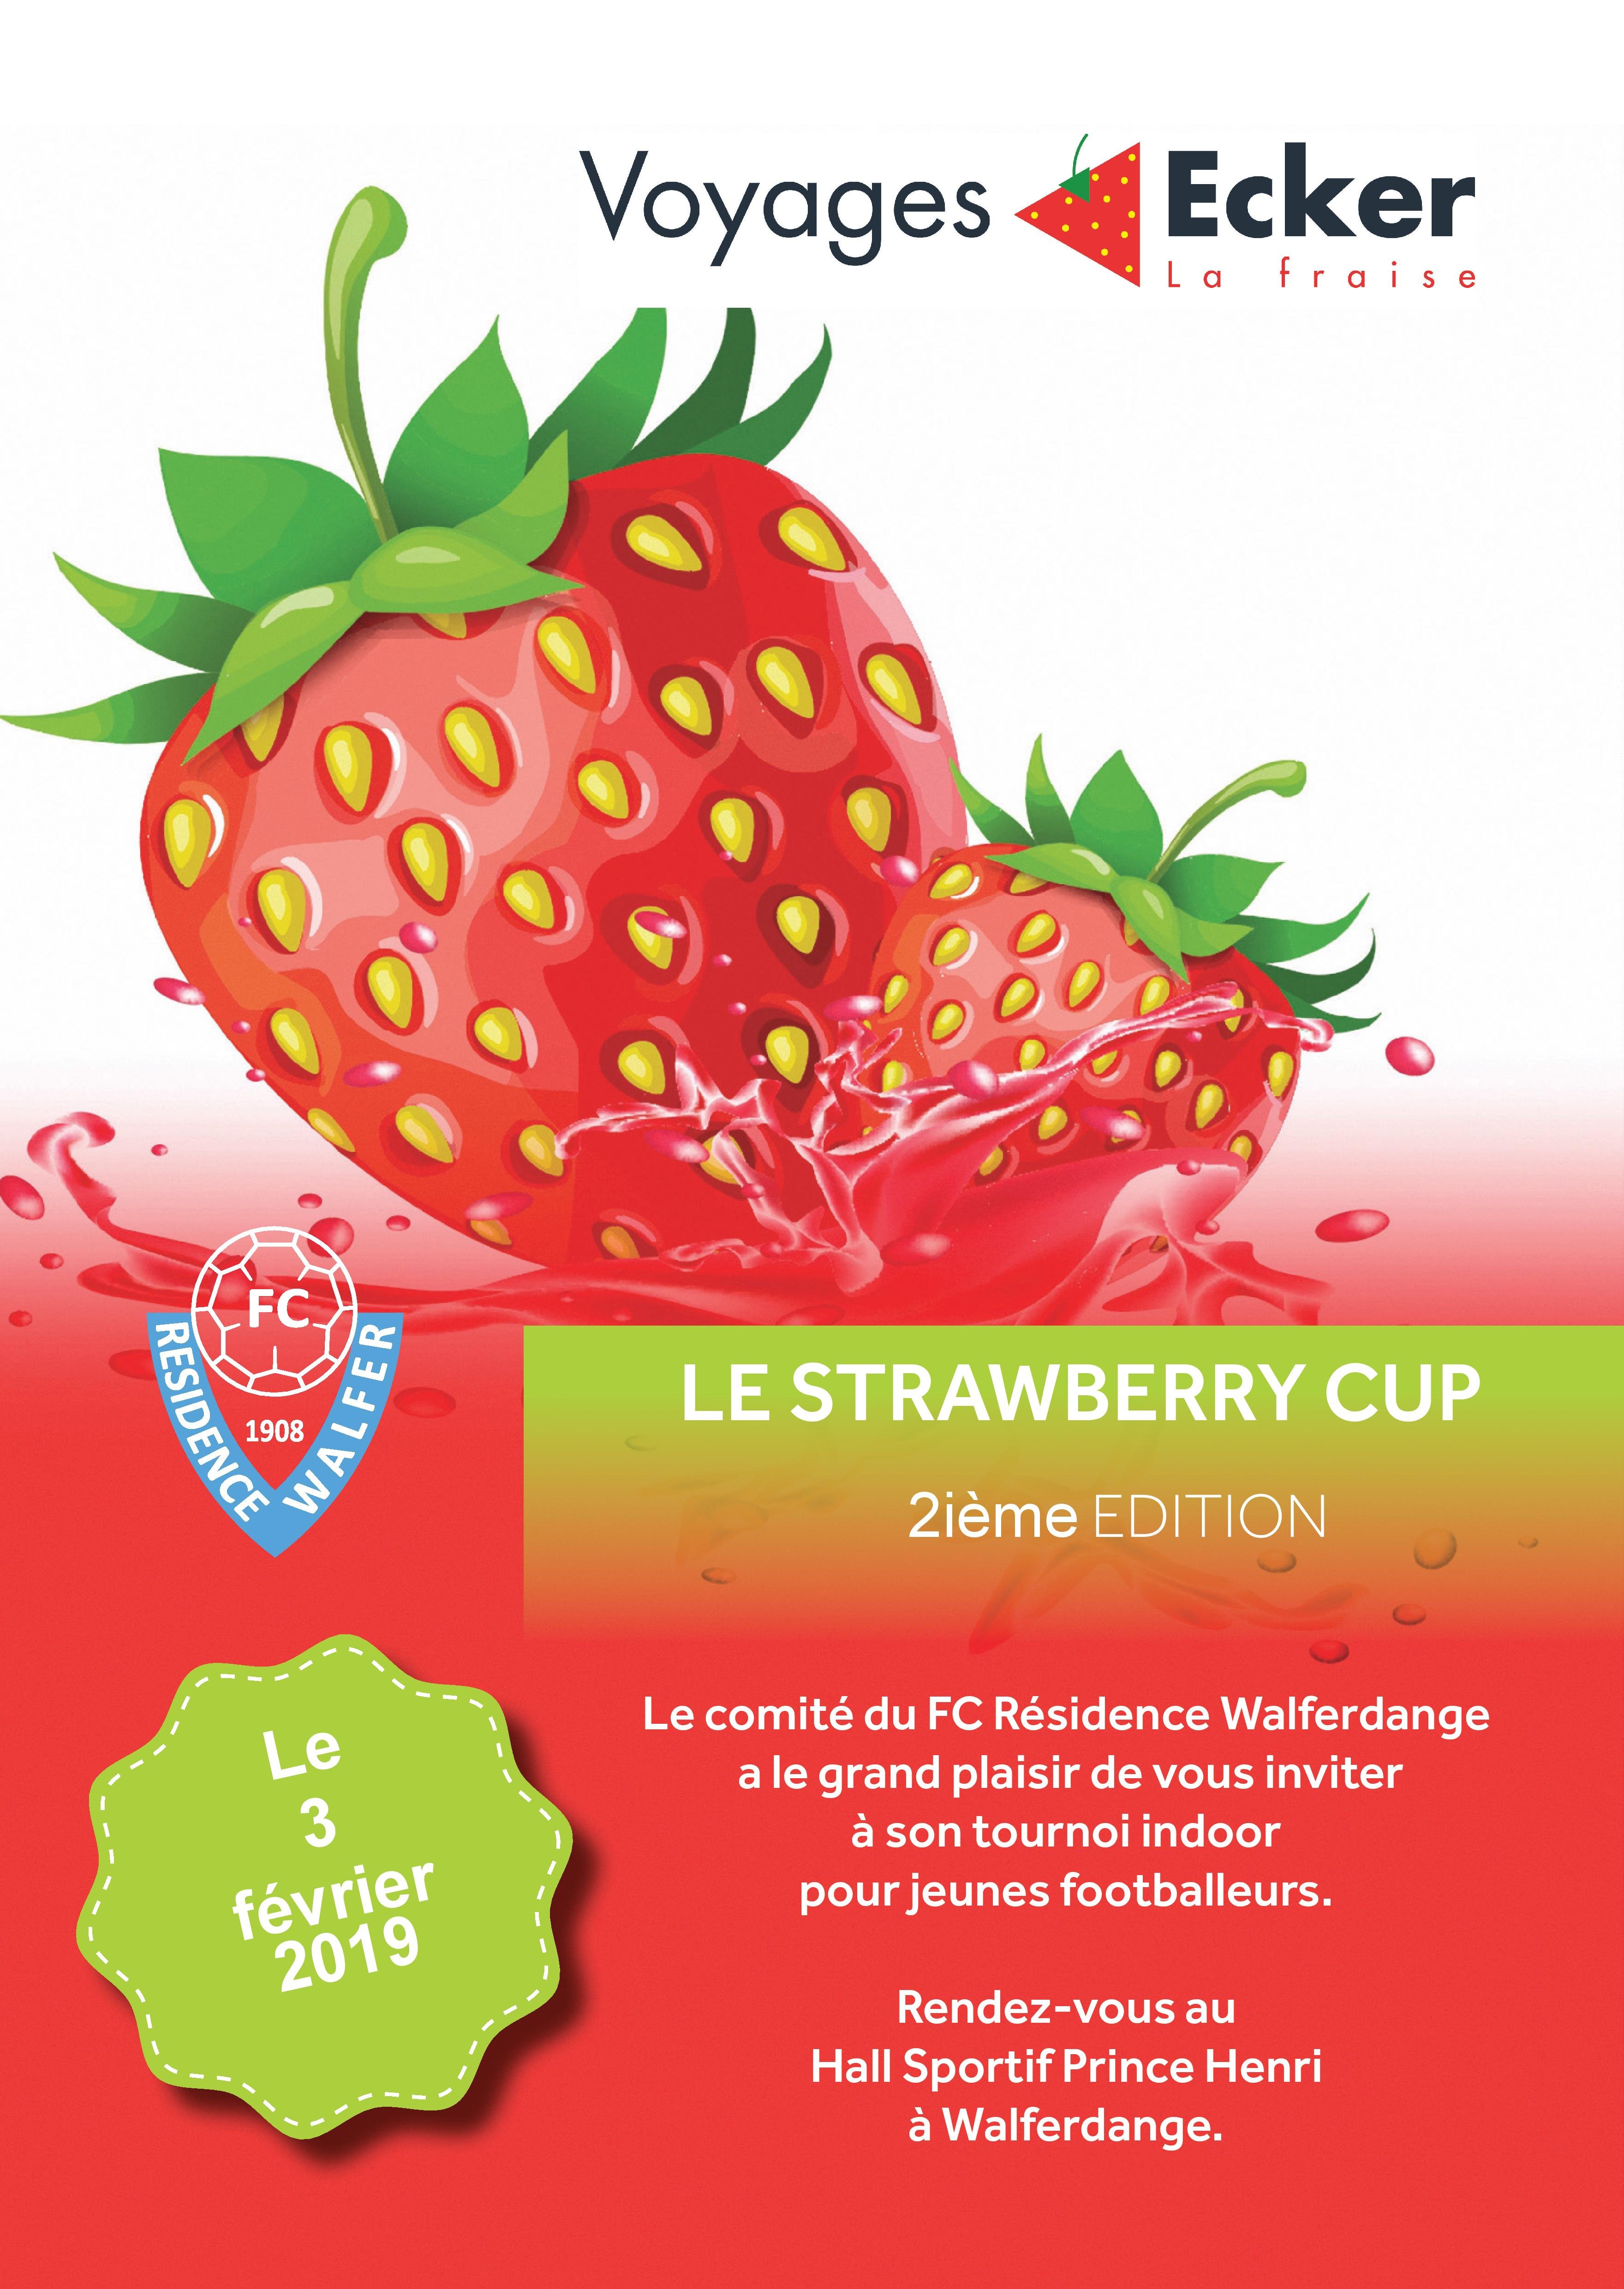 3/02/2019 Strawberry Cup Voyages Ecker 2019